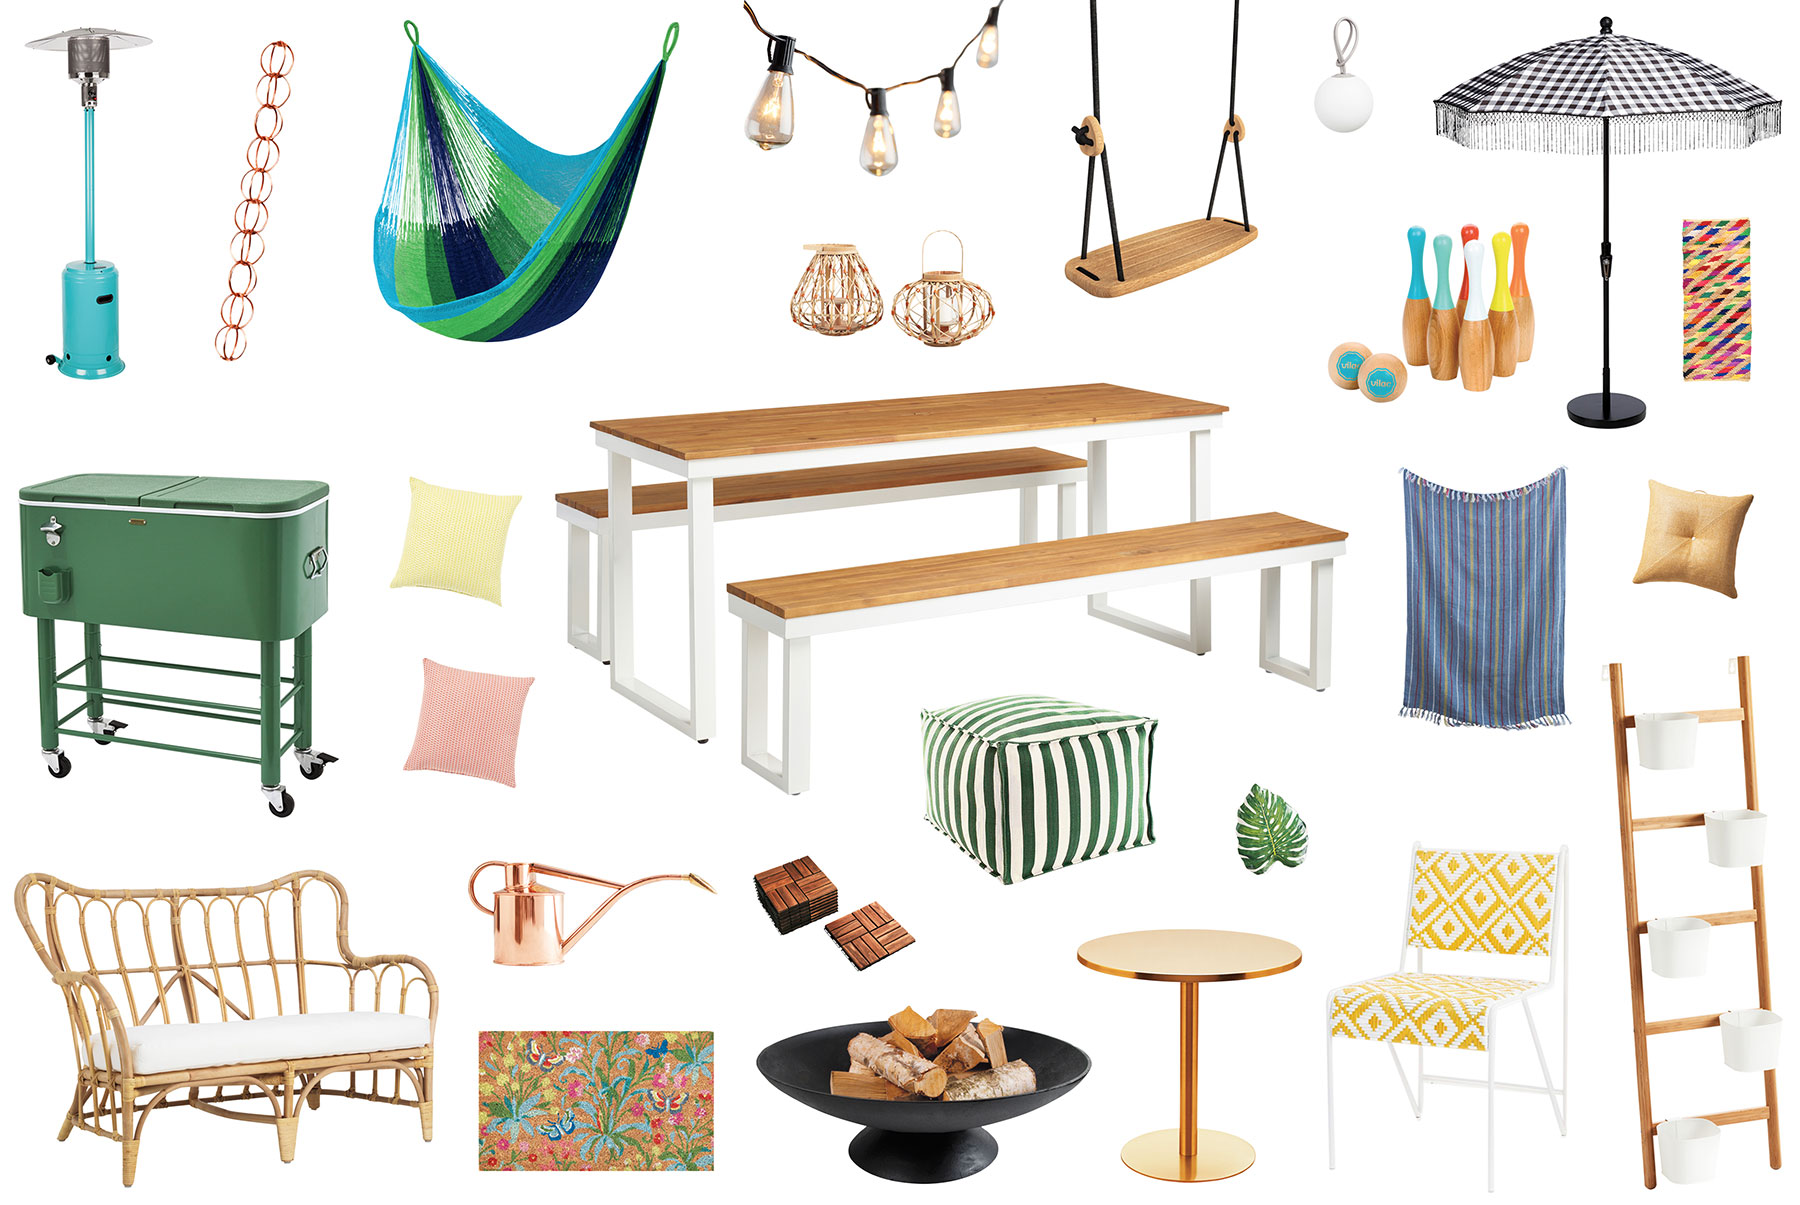 Outdoor space decorating products